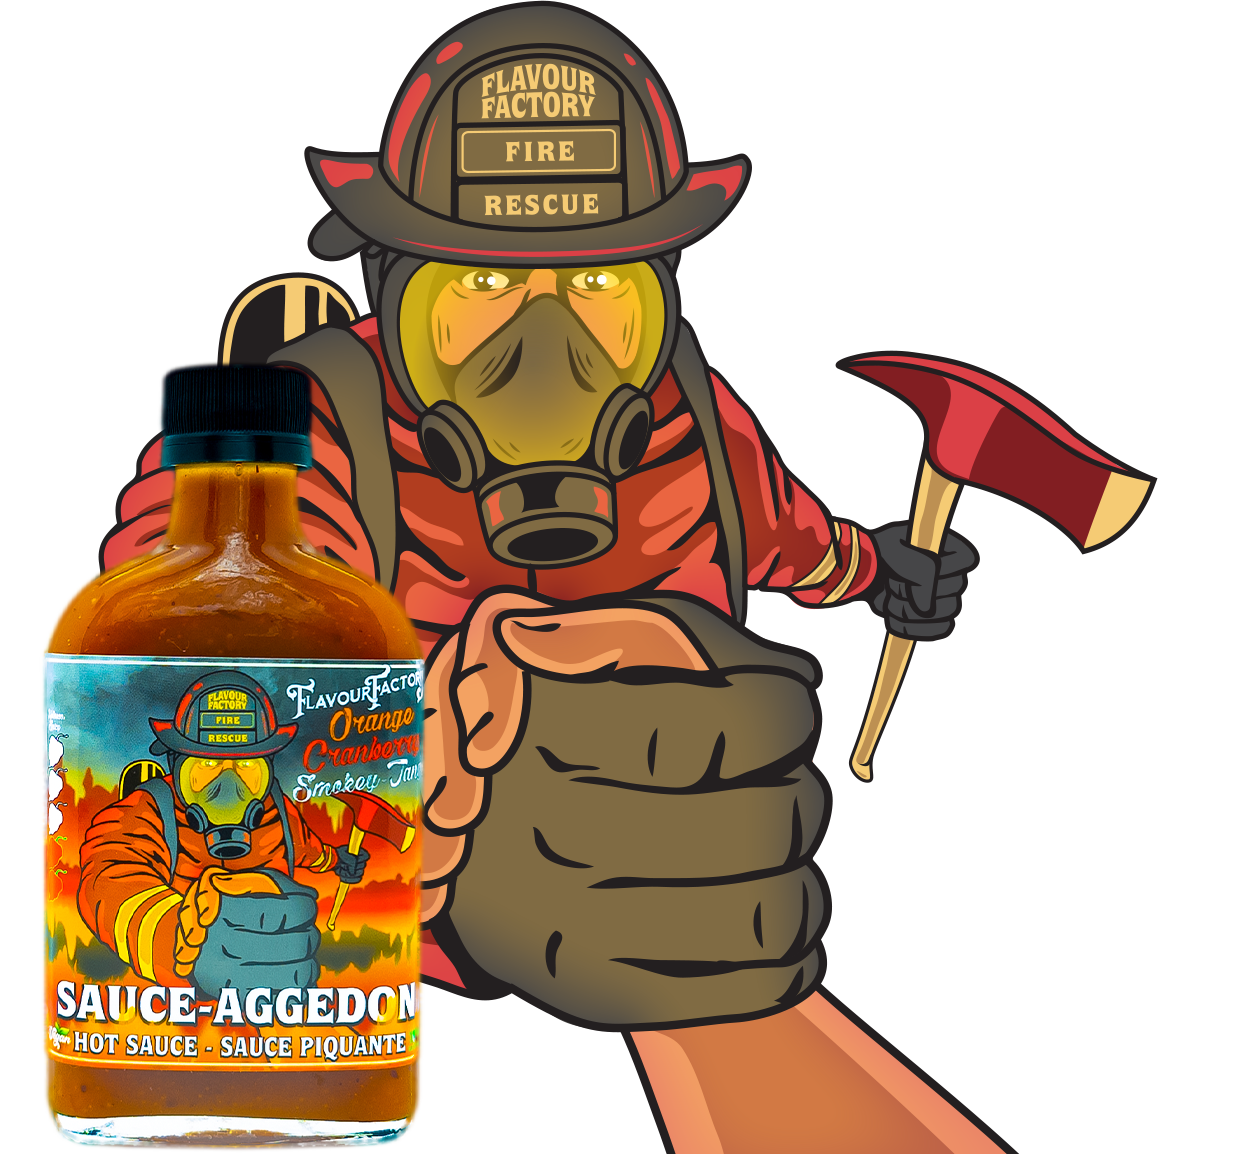 Sauce Aggedon Hot Sauce From Flavour Factory